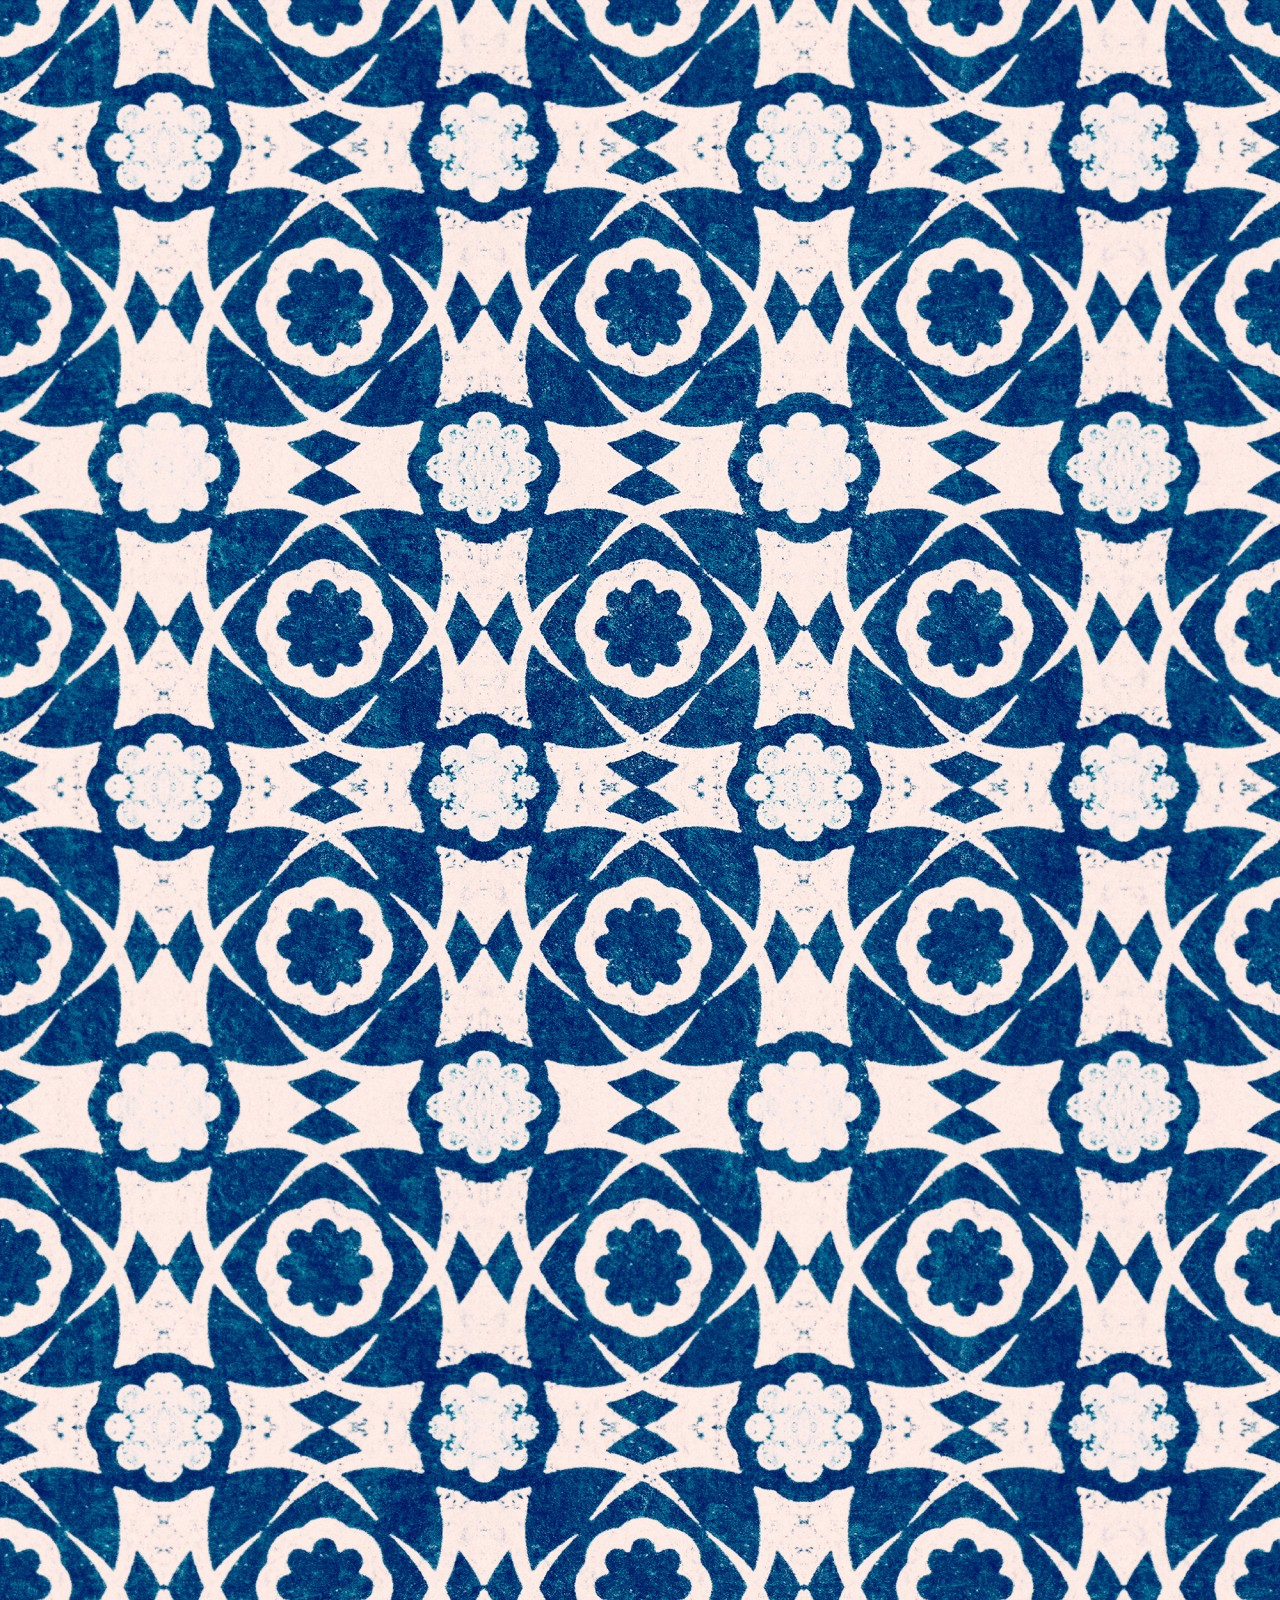 AEGEAN TILES Indigo Wallpaper